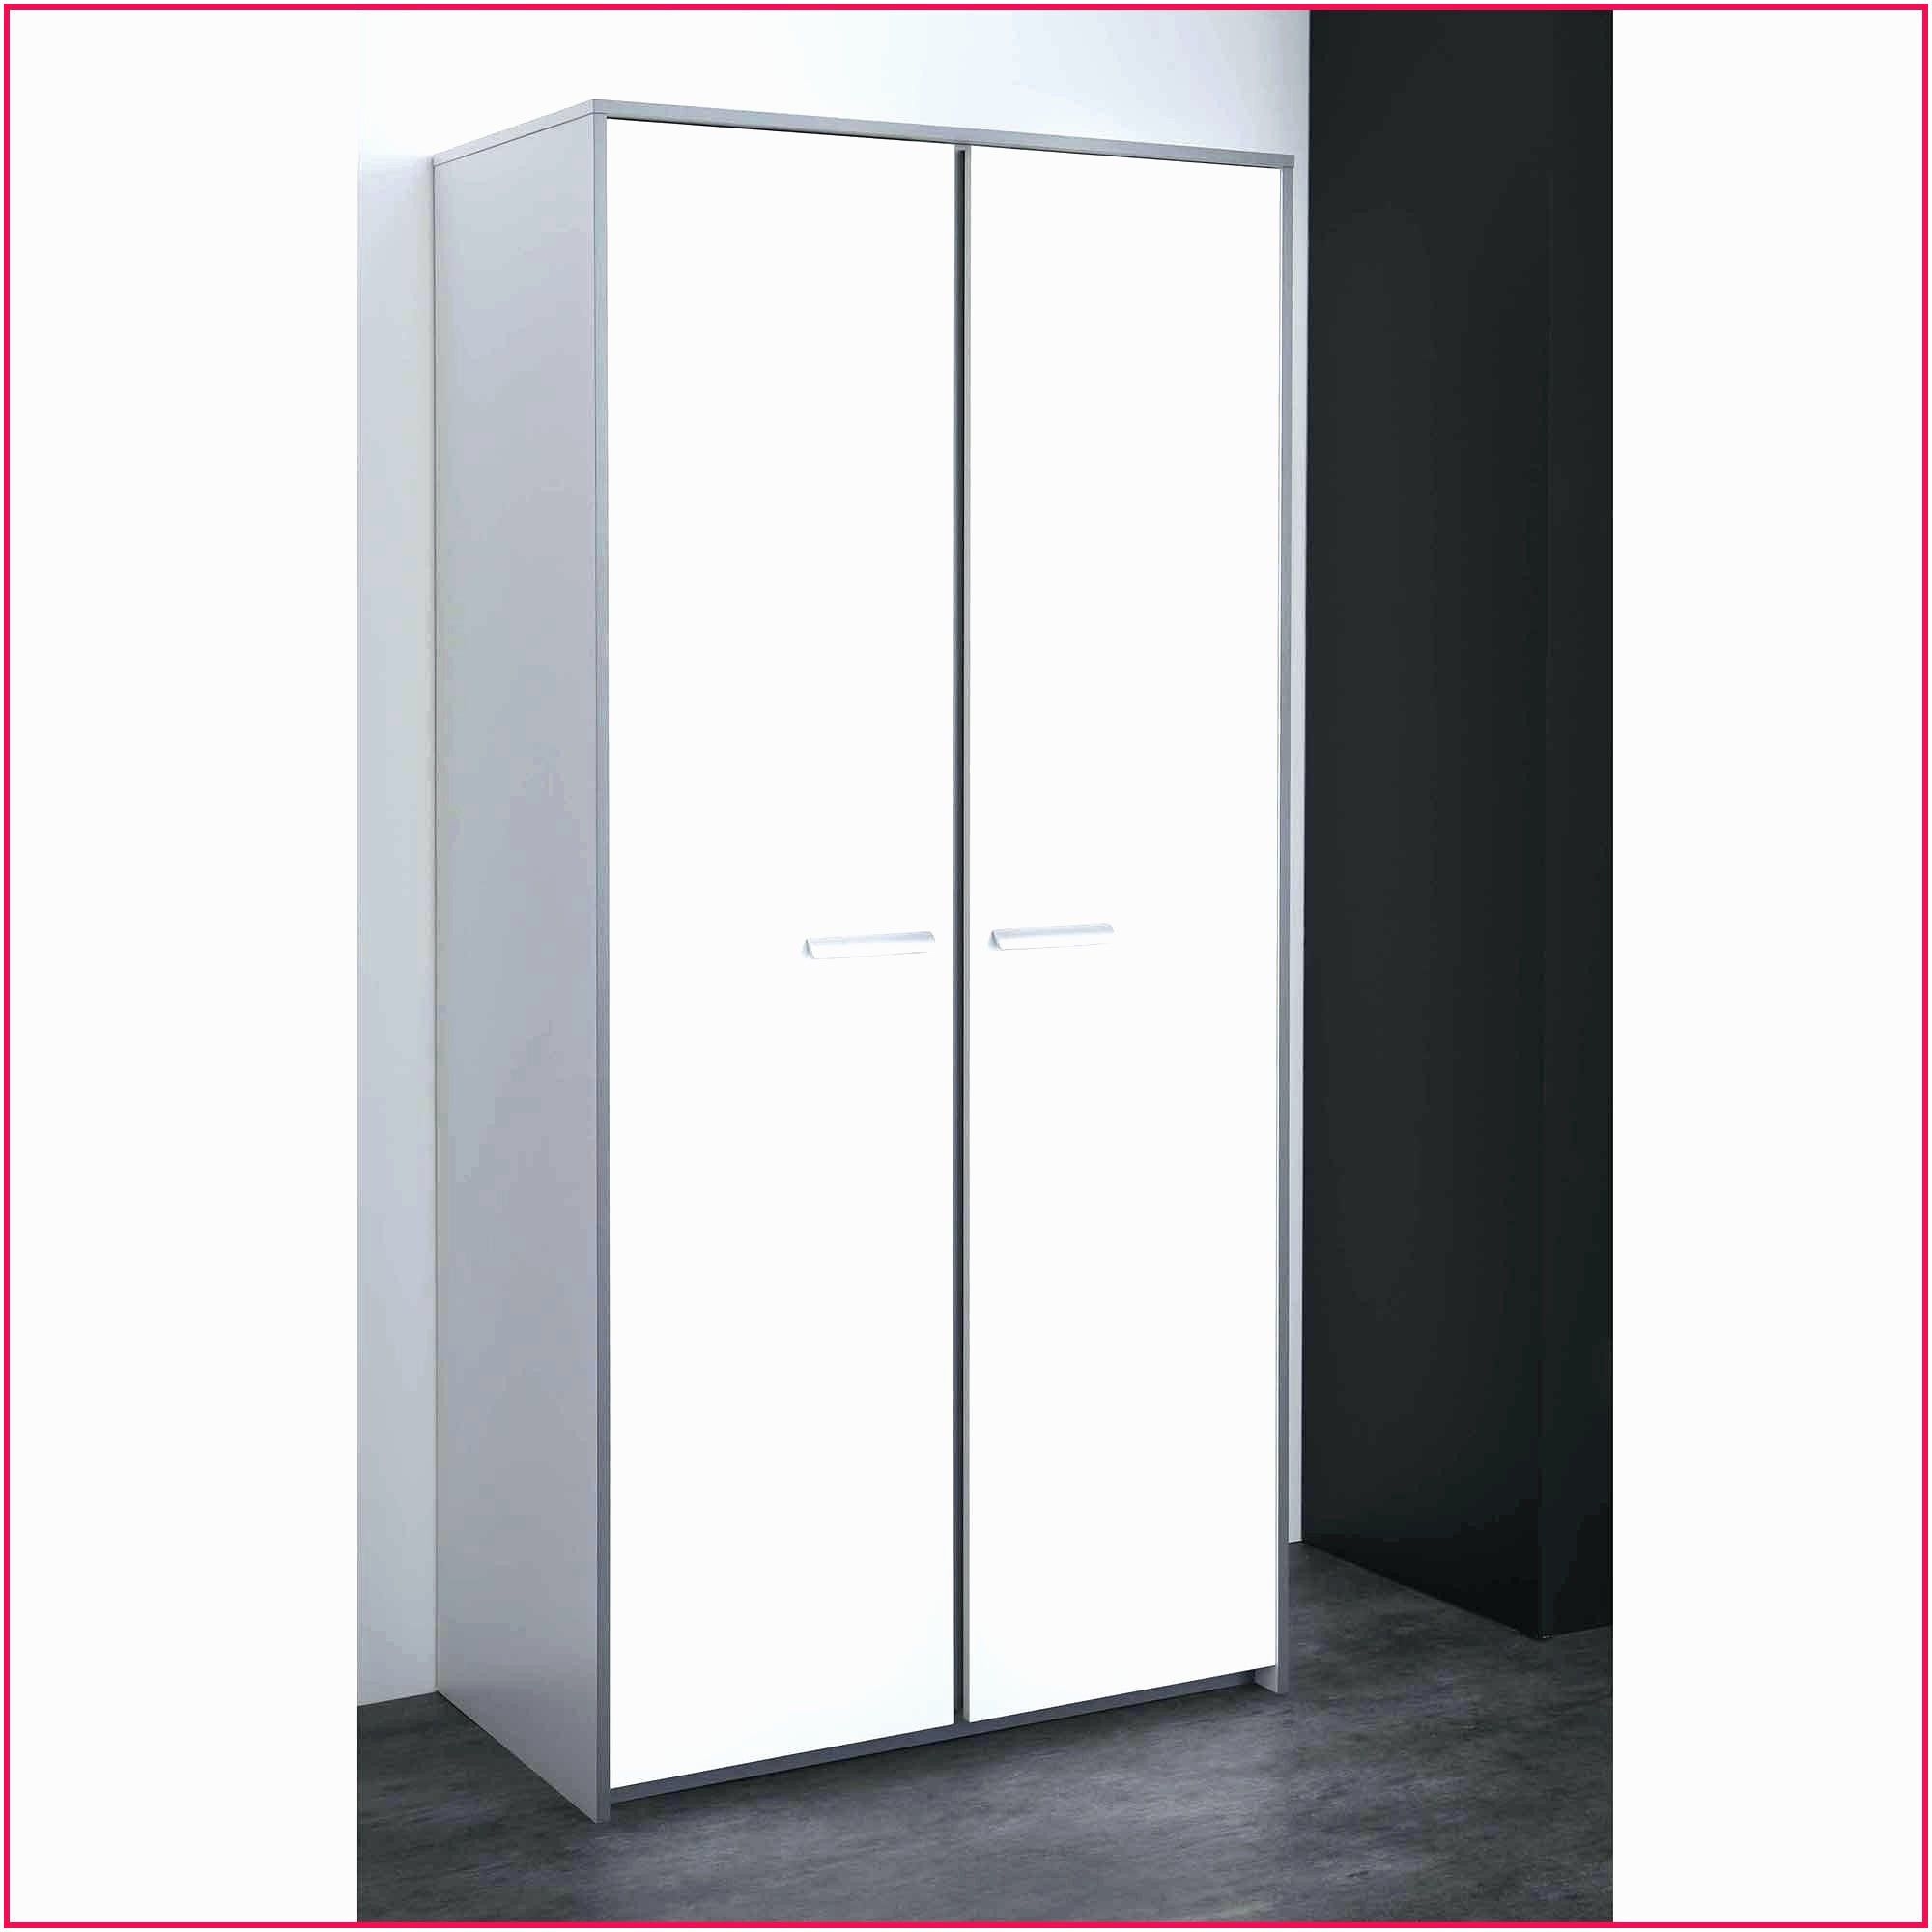 Armoire Porte Coulissante Ikea Armoire Porte Coulissante Ikea Pax Portes Coulissantes Decouvez Notre Vaste Gamme Tall Cabinet Storage Armoire Storage Cabinet